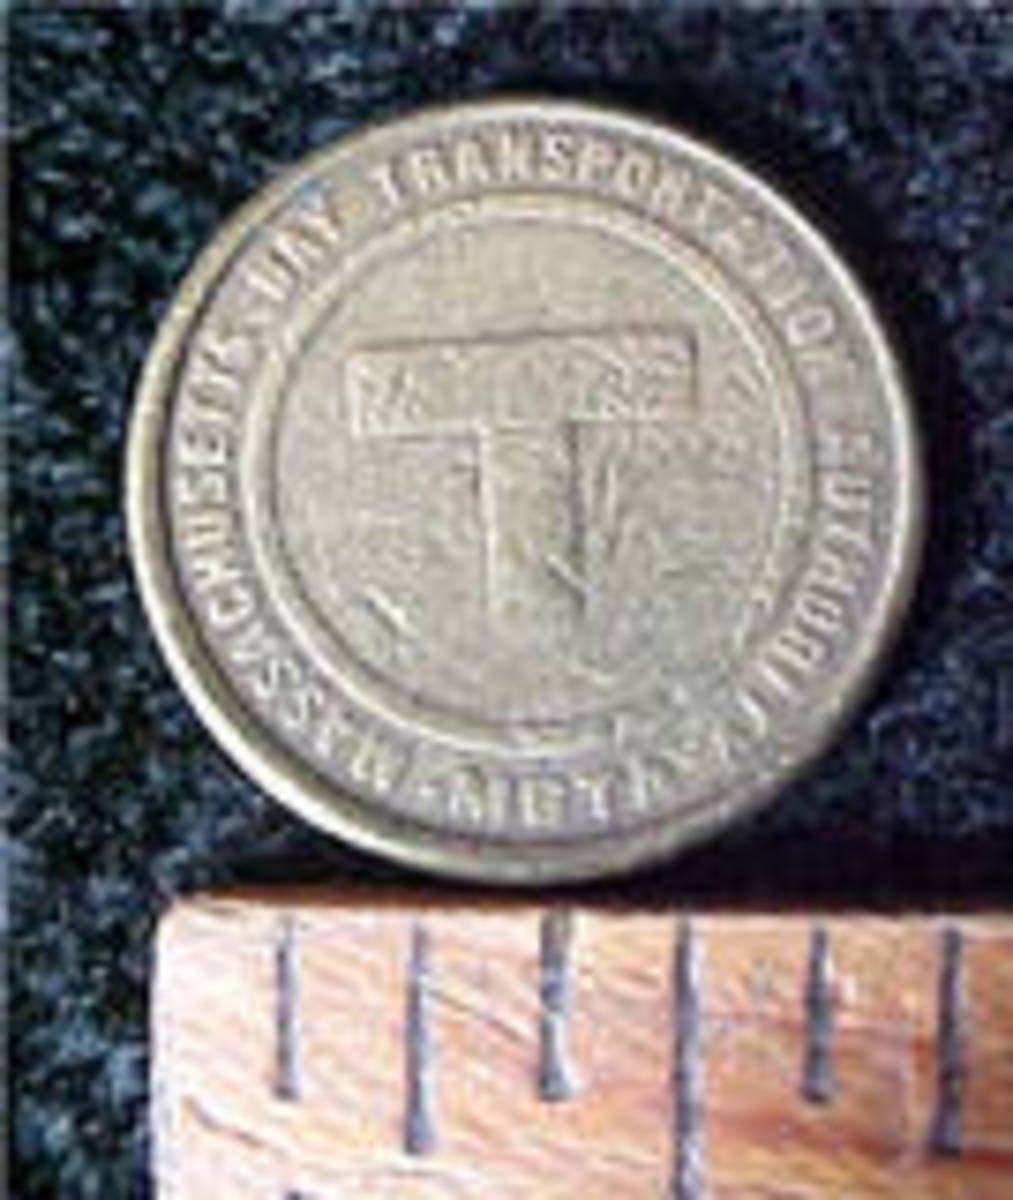 This is the reverse side of the Massachusetts transit coin, measured to designate scale.